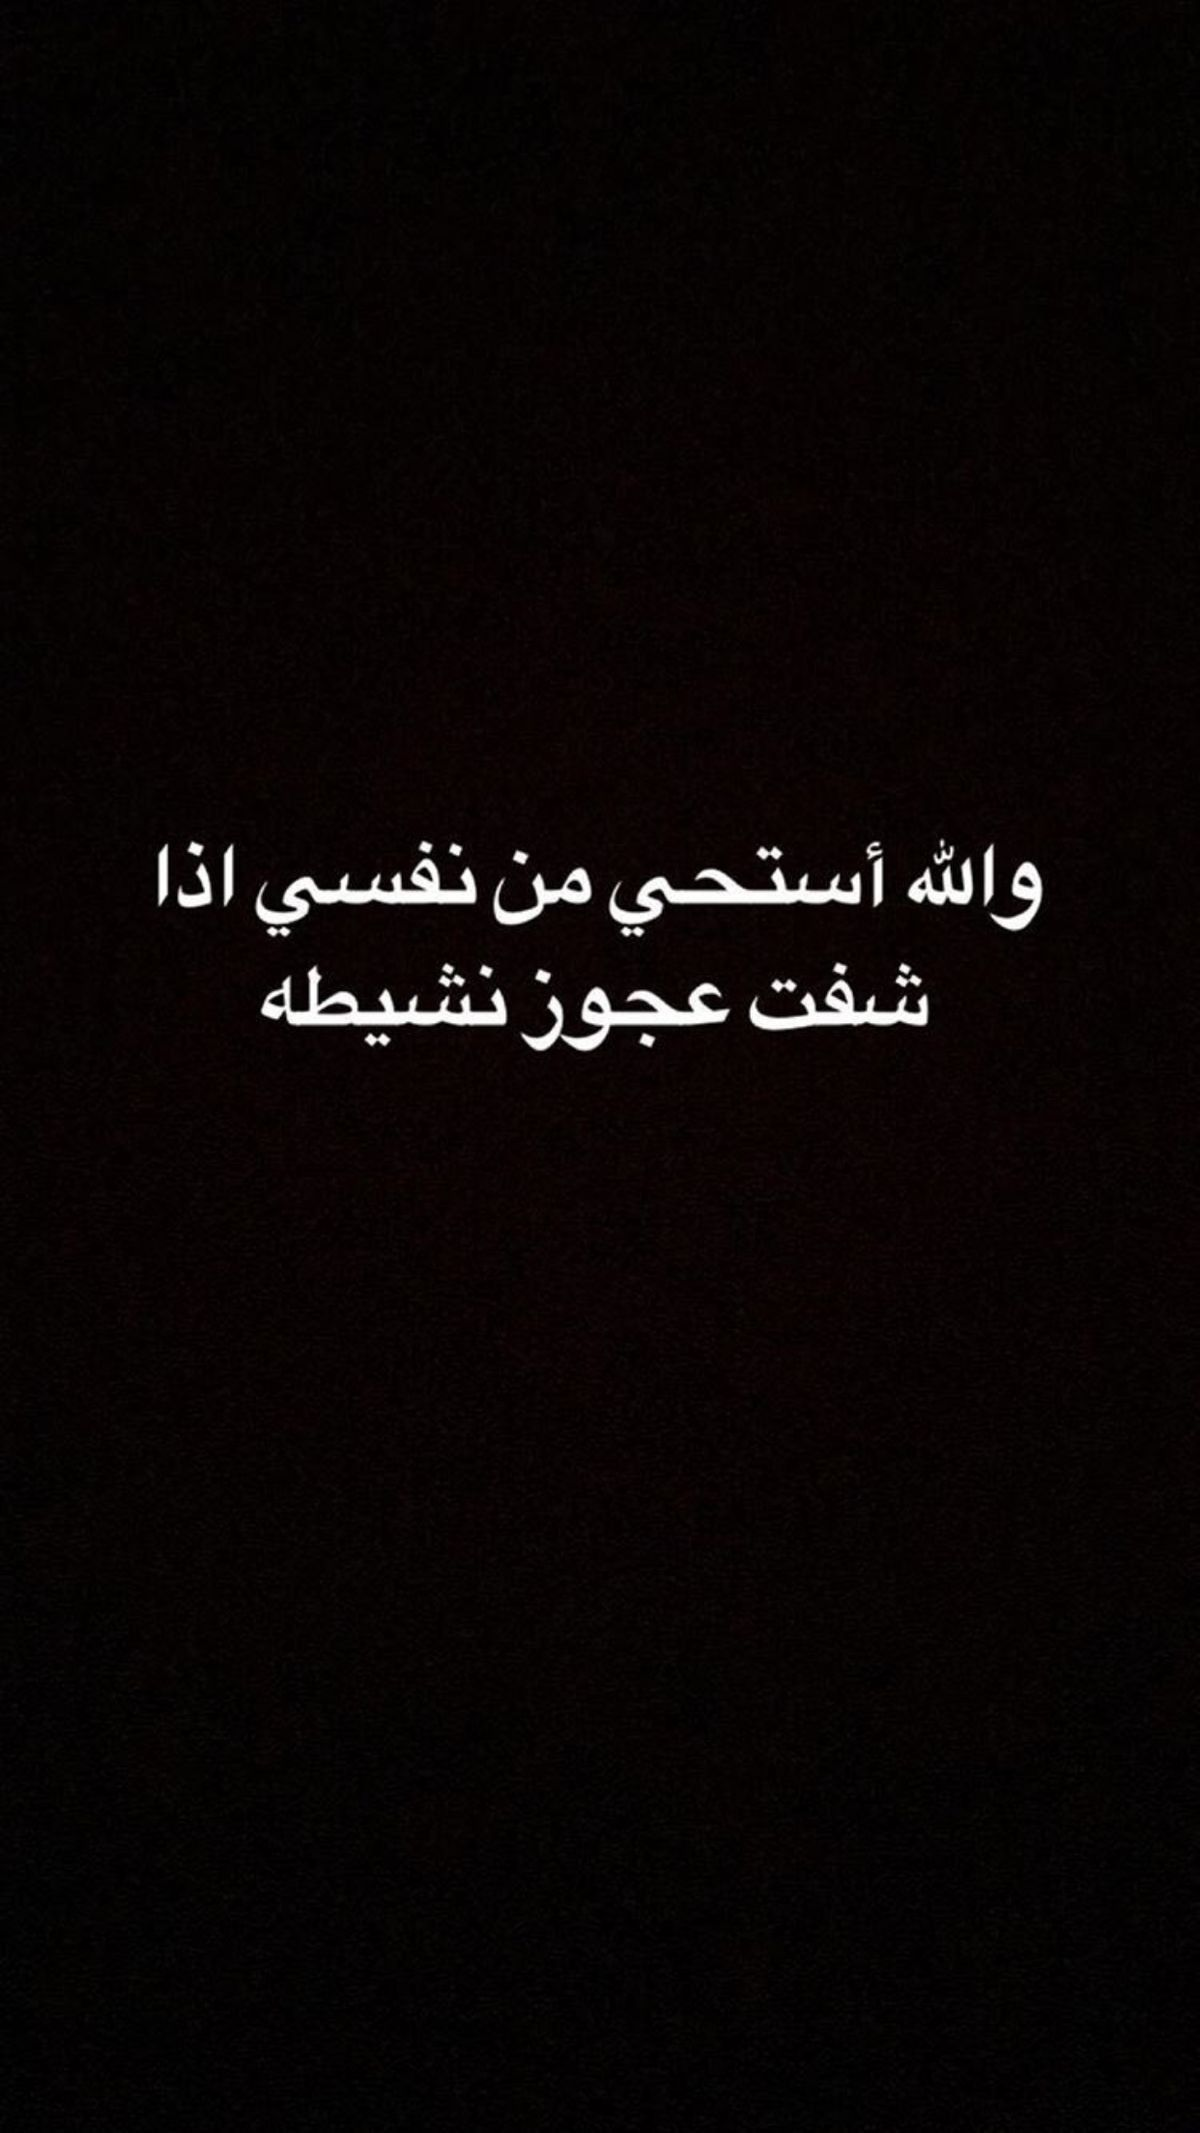 Pin By Harry Styles On كلمات Funny Arabic Quotes Laughing Quotes Funny Phrases